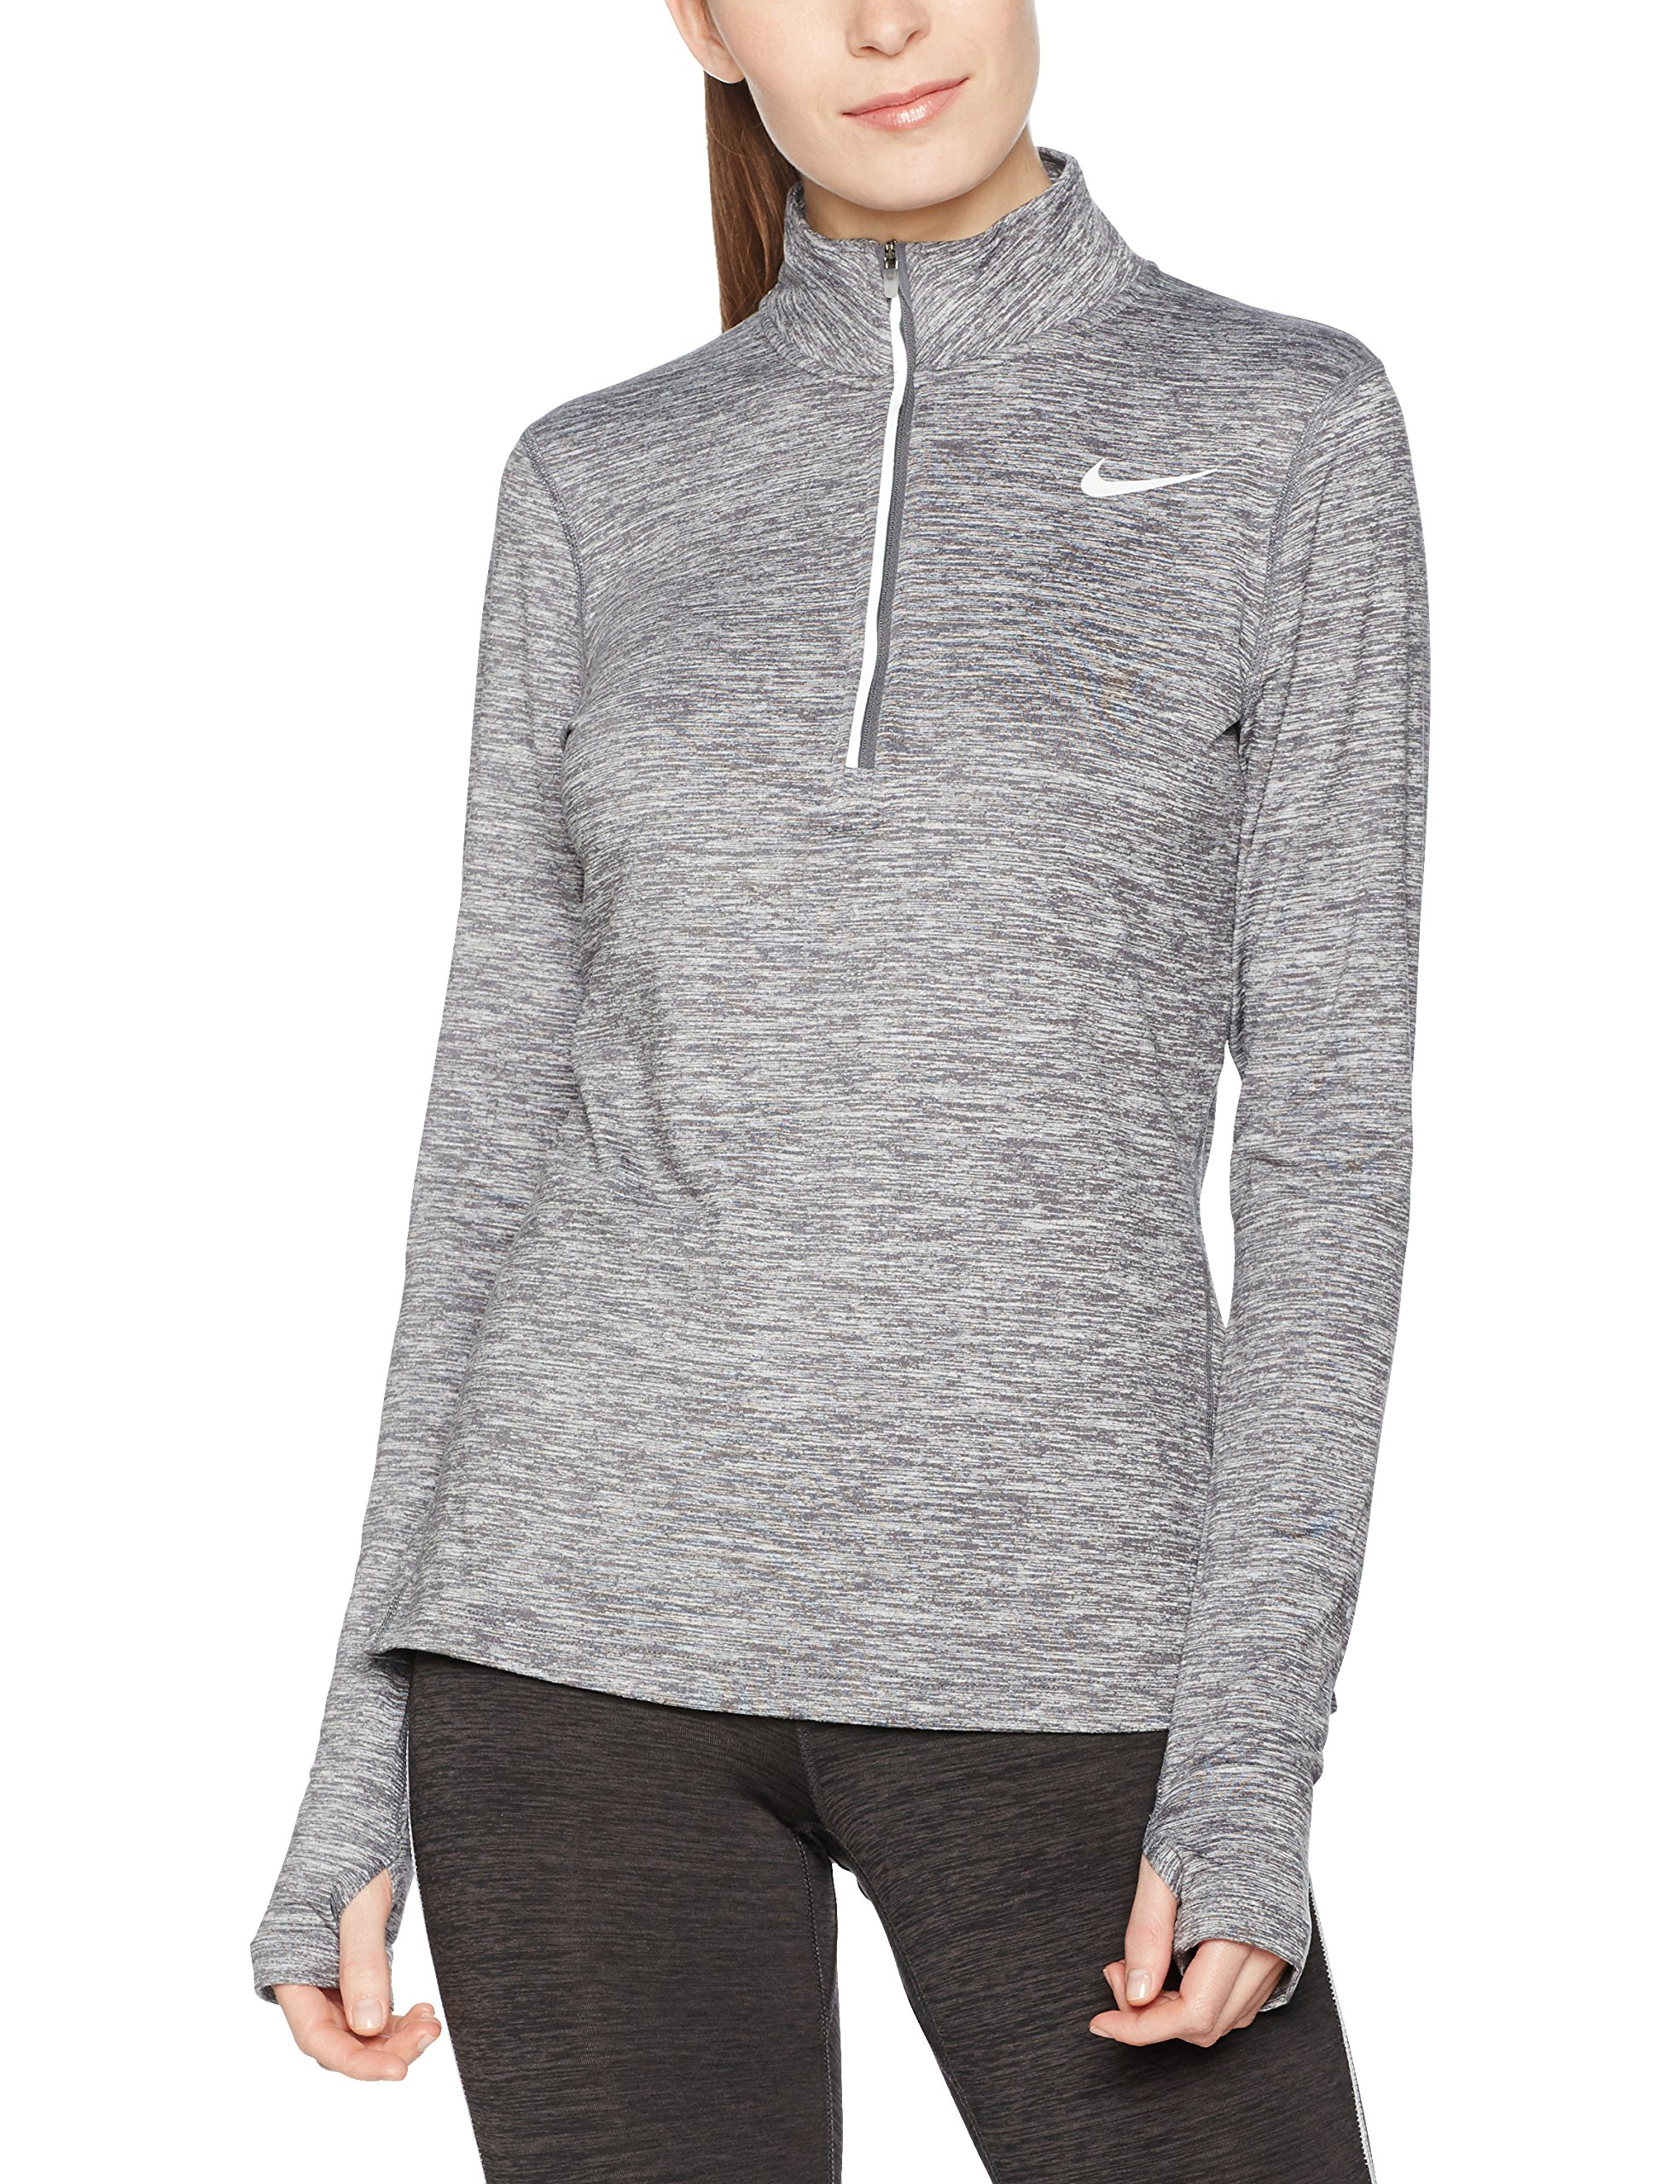 Nike Women's Dri-FIT? Element Half Zip Dark Grey/Heather/Reflective Silver T-Shirt XL